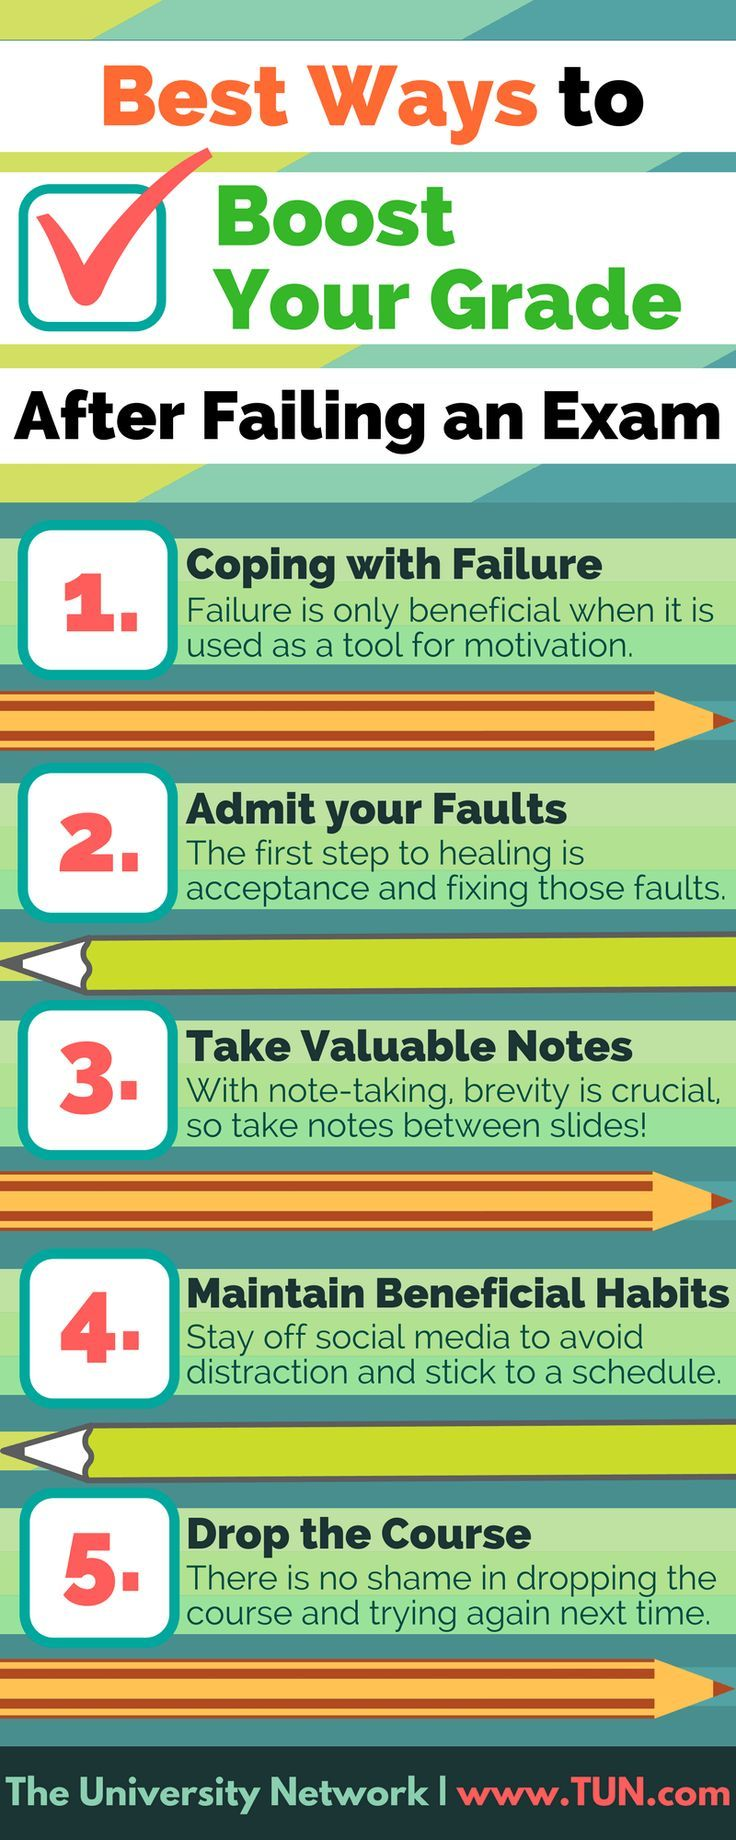 Don't worry if you failed an exam; you can grow from this. There are many simple ways to get your grades back on track, if you set your mind to it. Here are five steps to boost your grade after failing an exam.